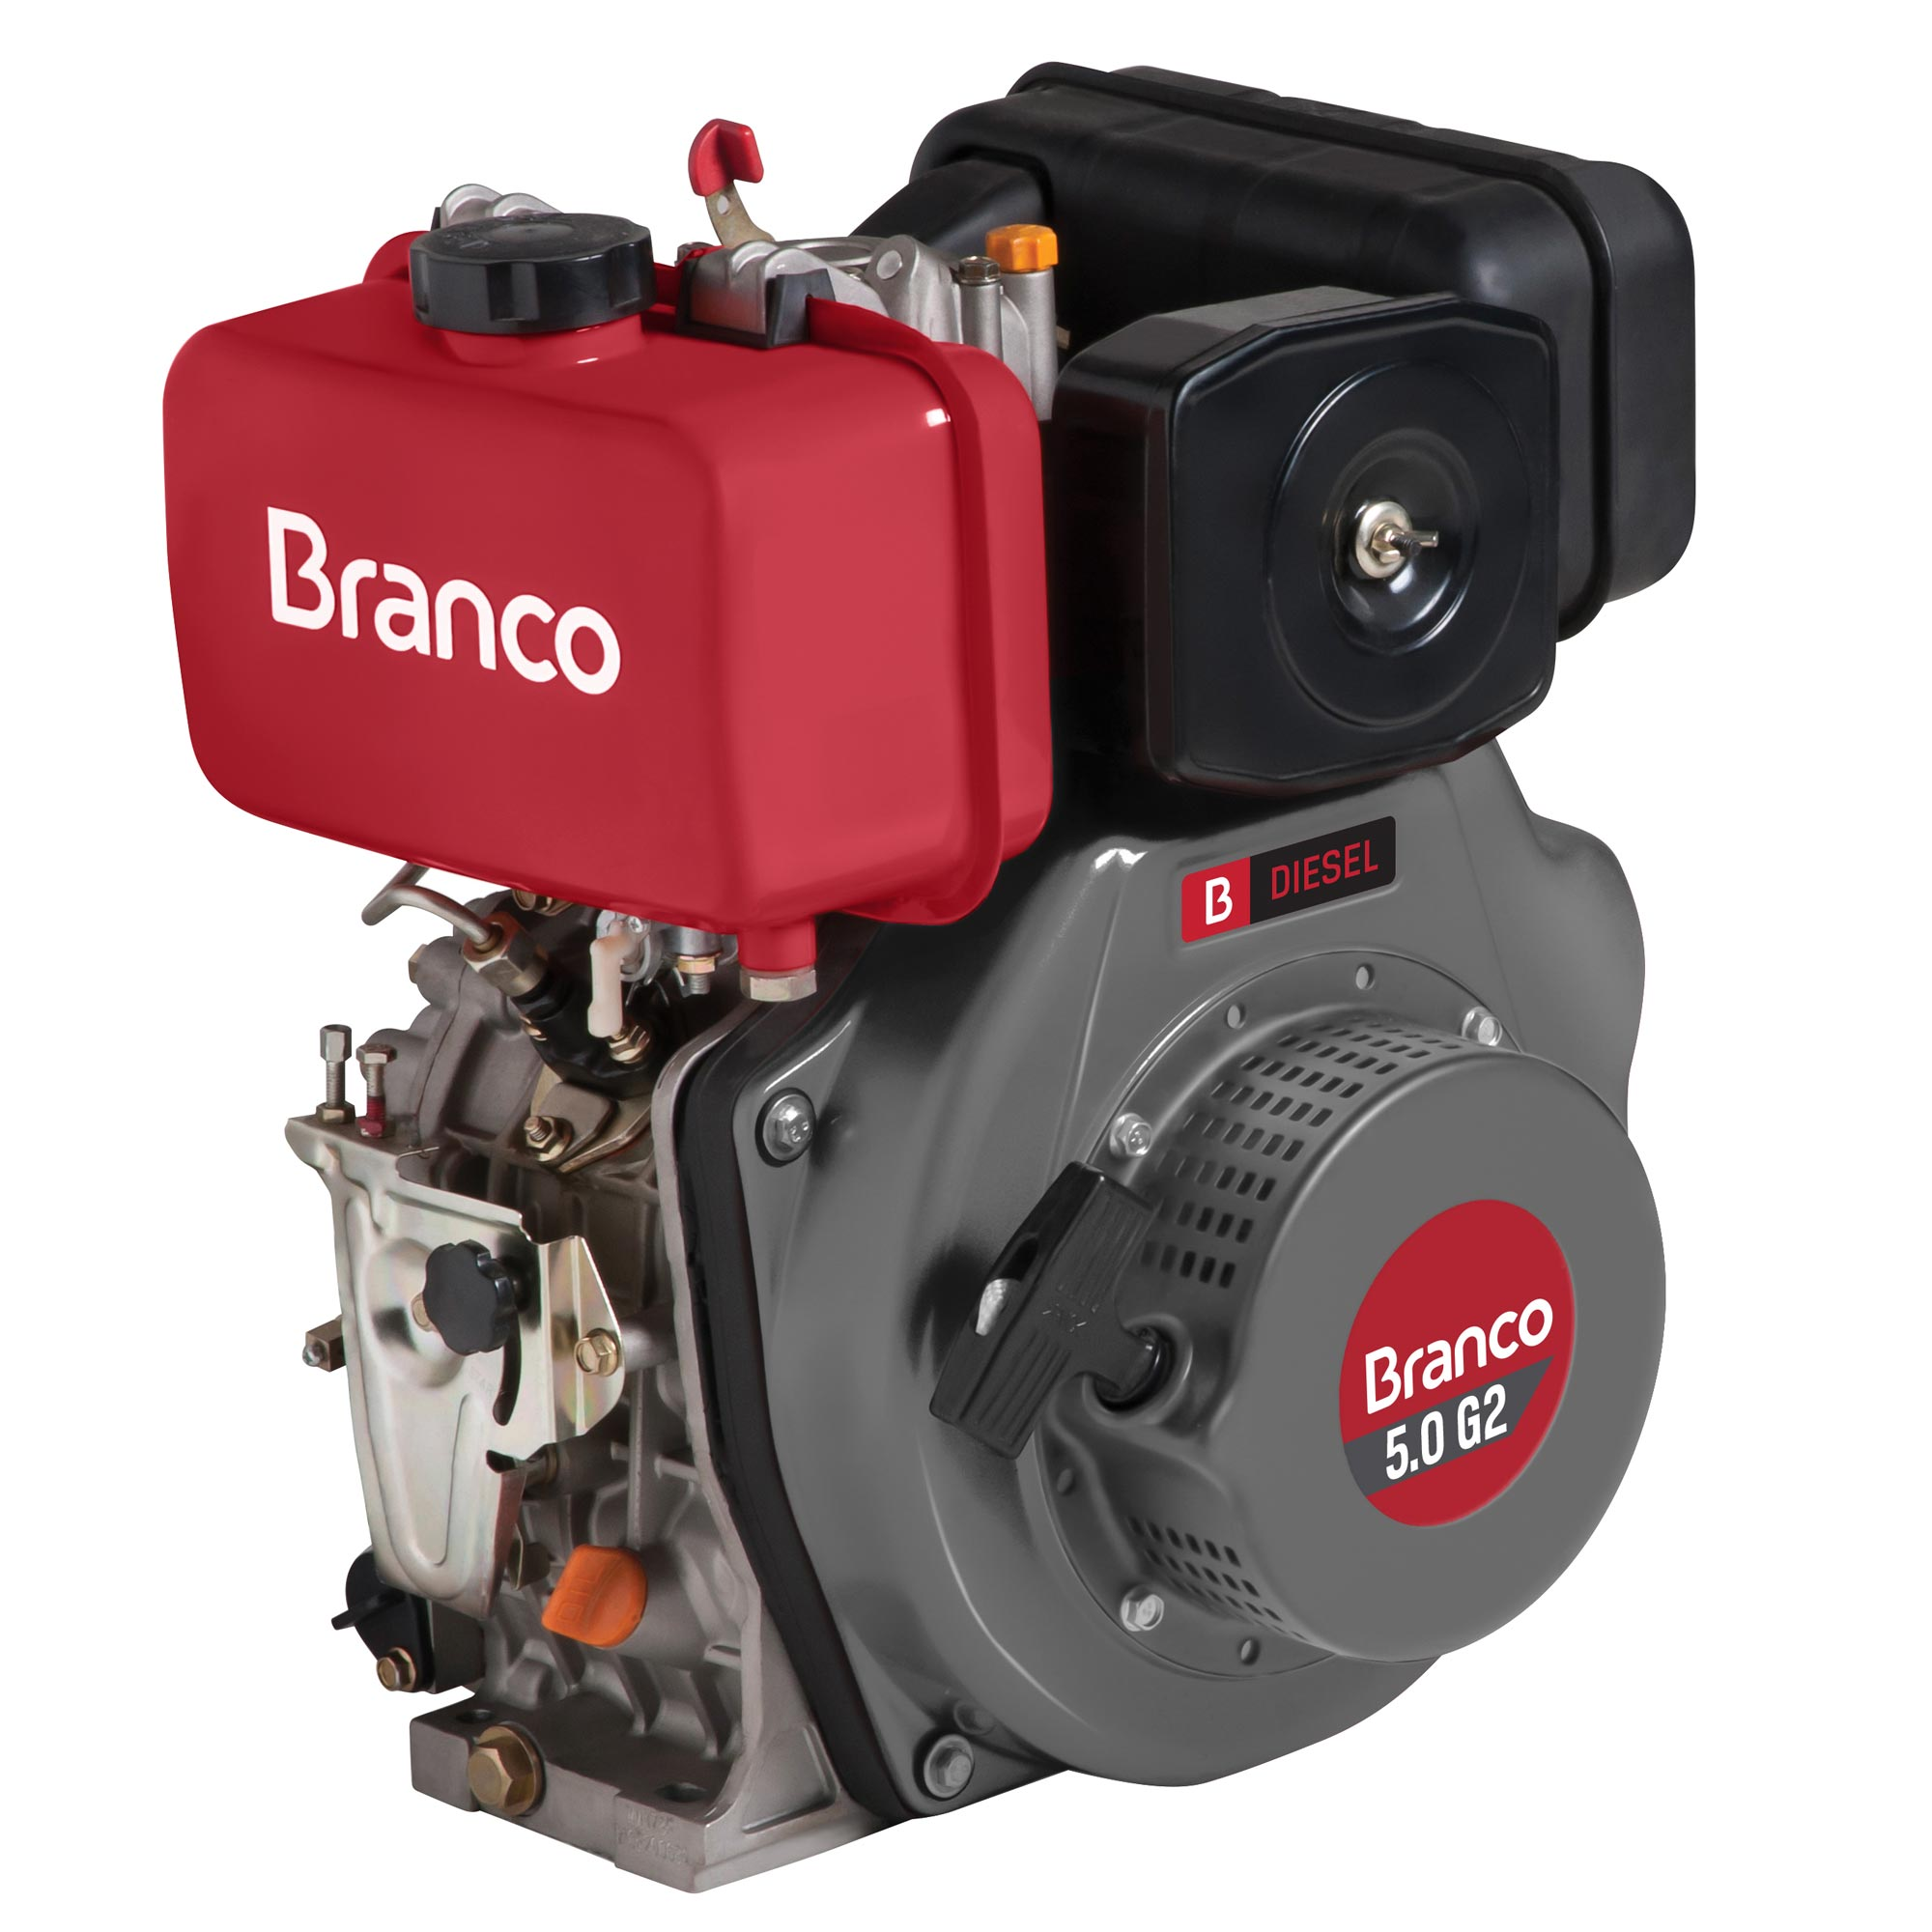 Motor Branco 5,0 hp - G2 (Manual)